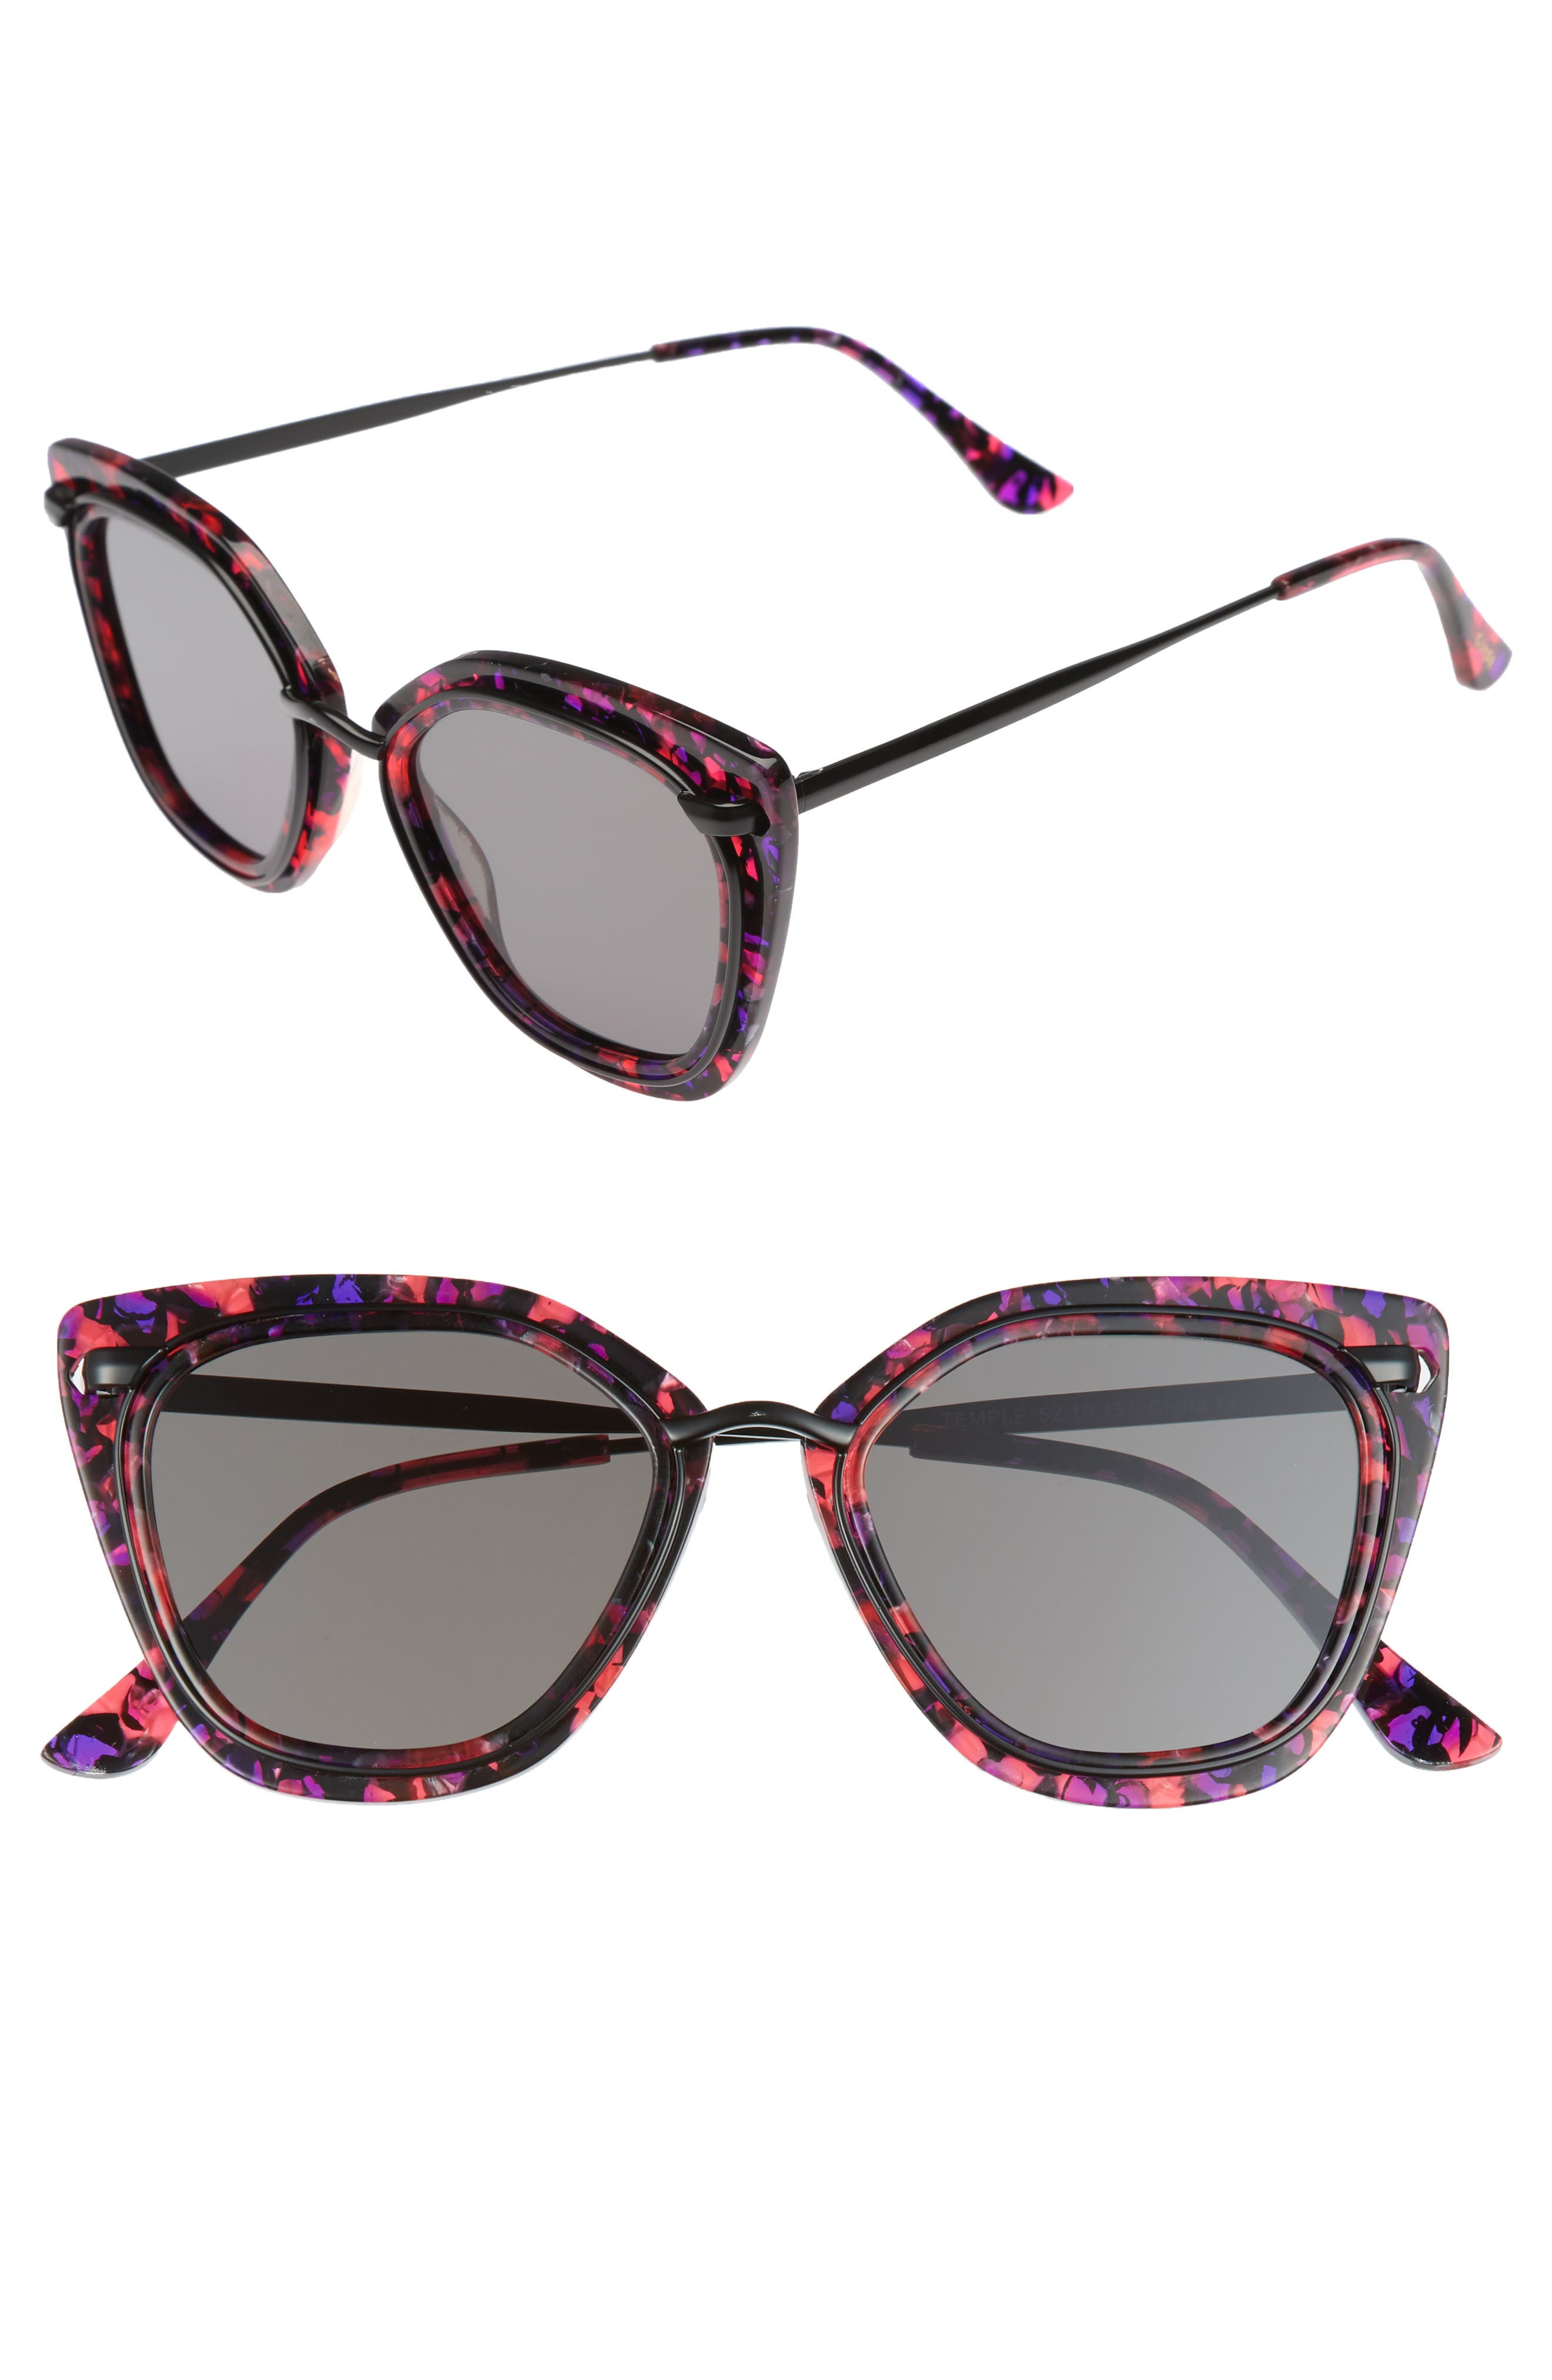 Temple 52mm Sunglasses,                             Main thumbnail 1, color,                             Purple Tortoise